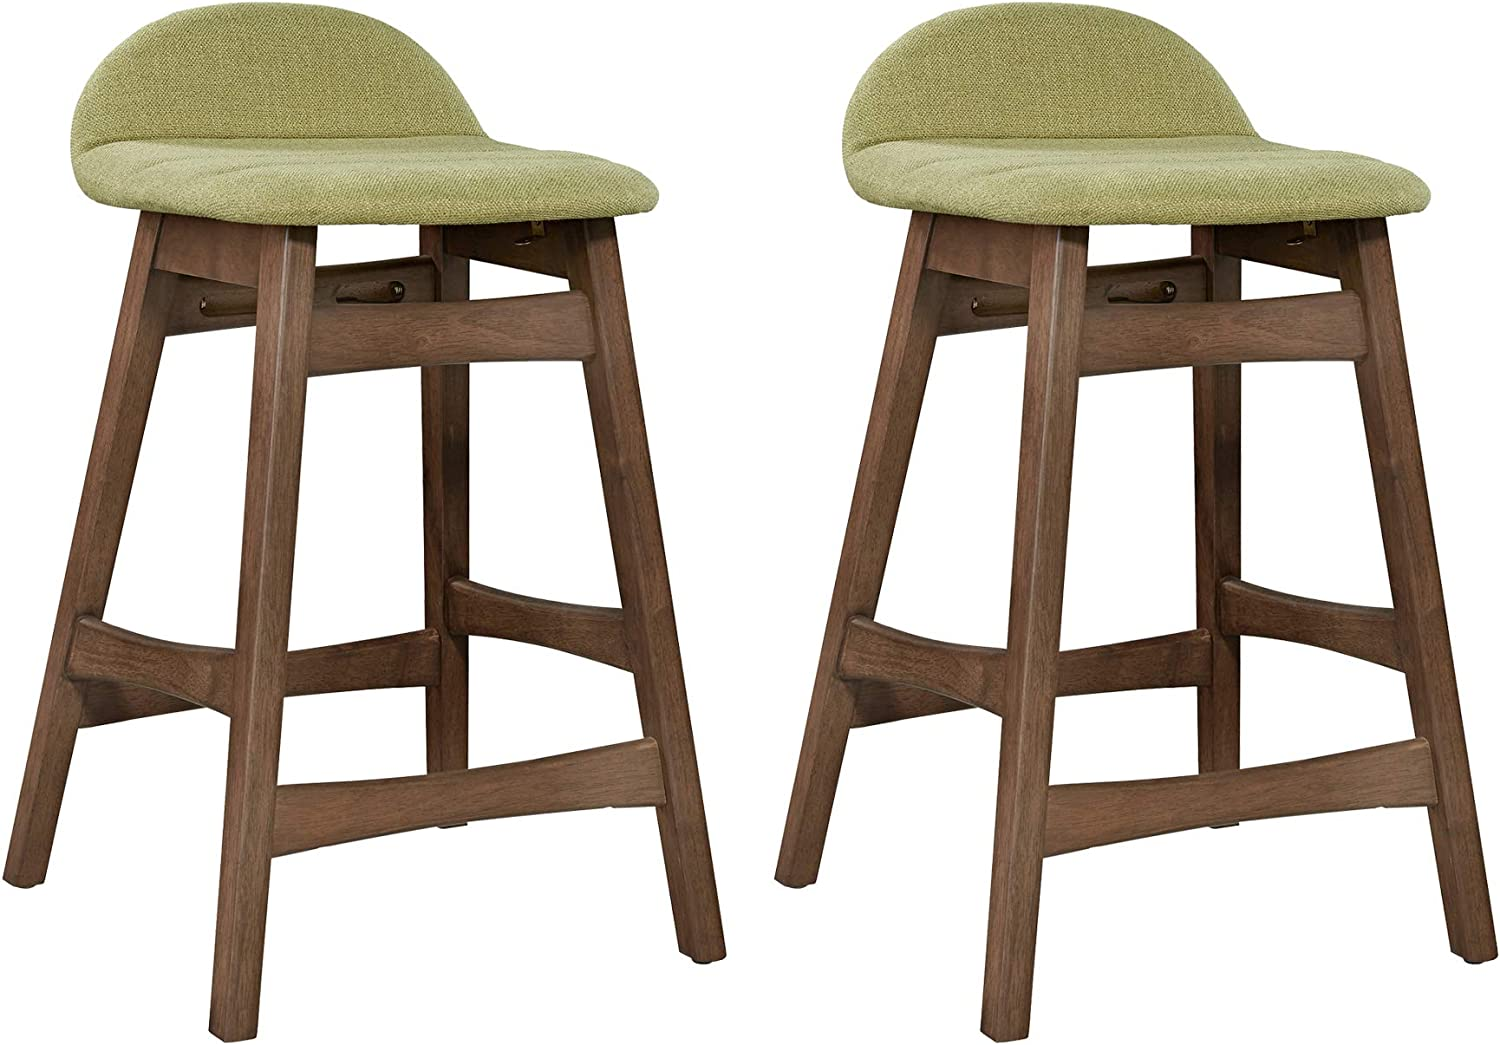 Liberty Furniture Industries Space Savers (Set of 2) Counter Chair (RTA), Green